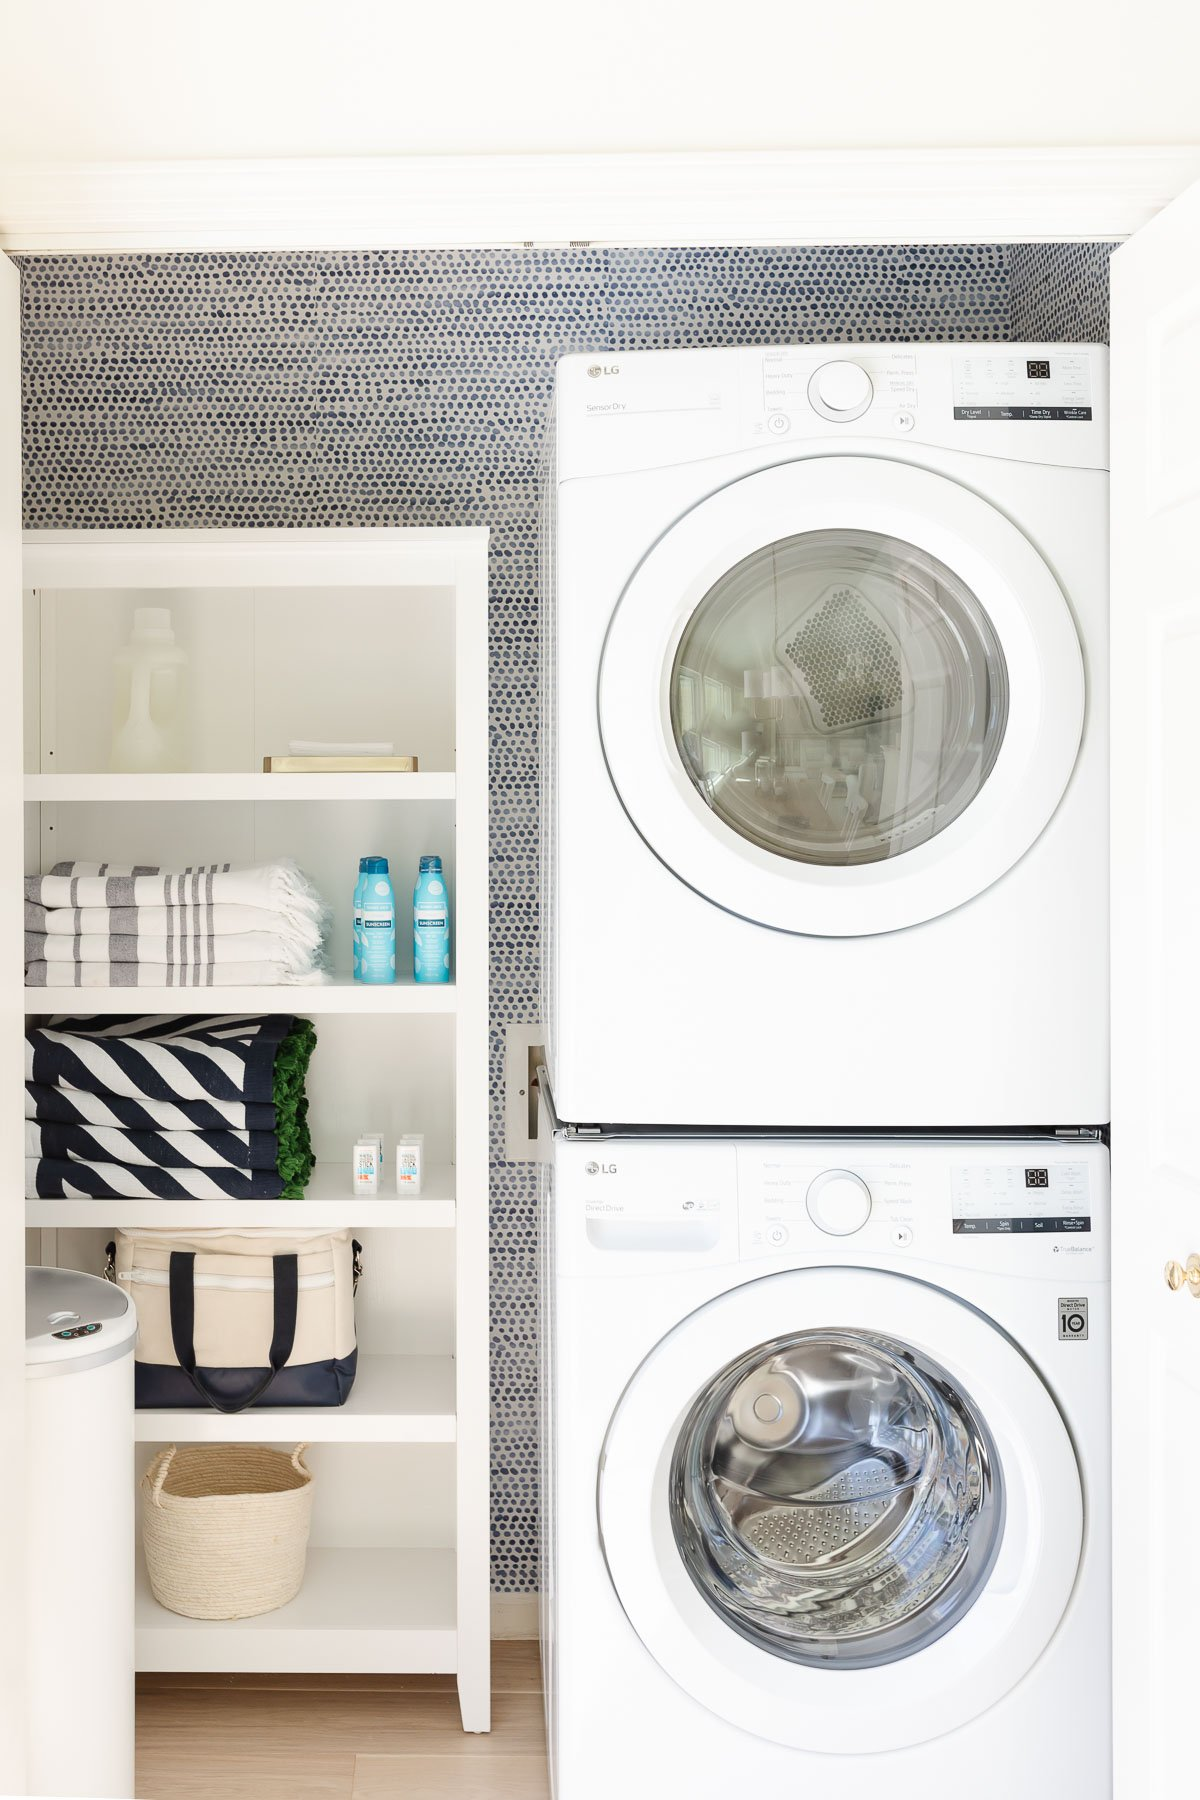 rubbish from shelves and stacked washing machines and dryers in the closet